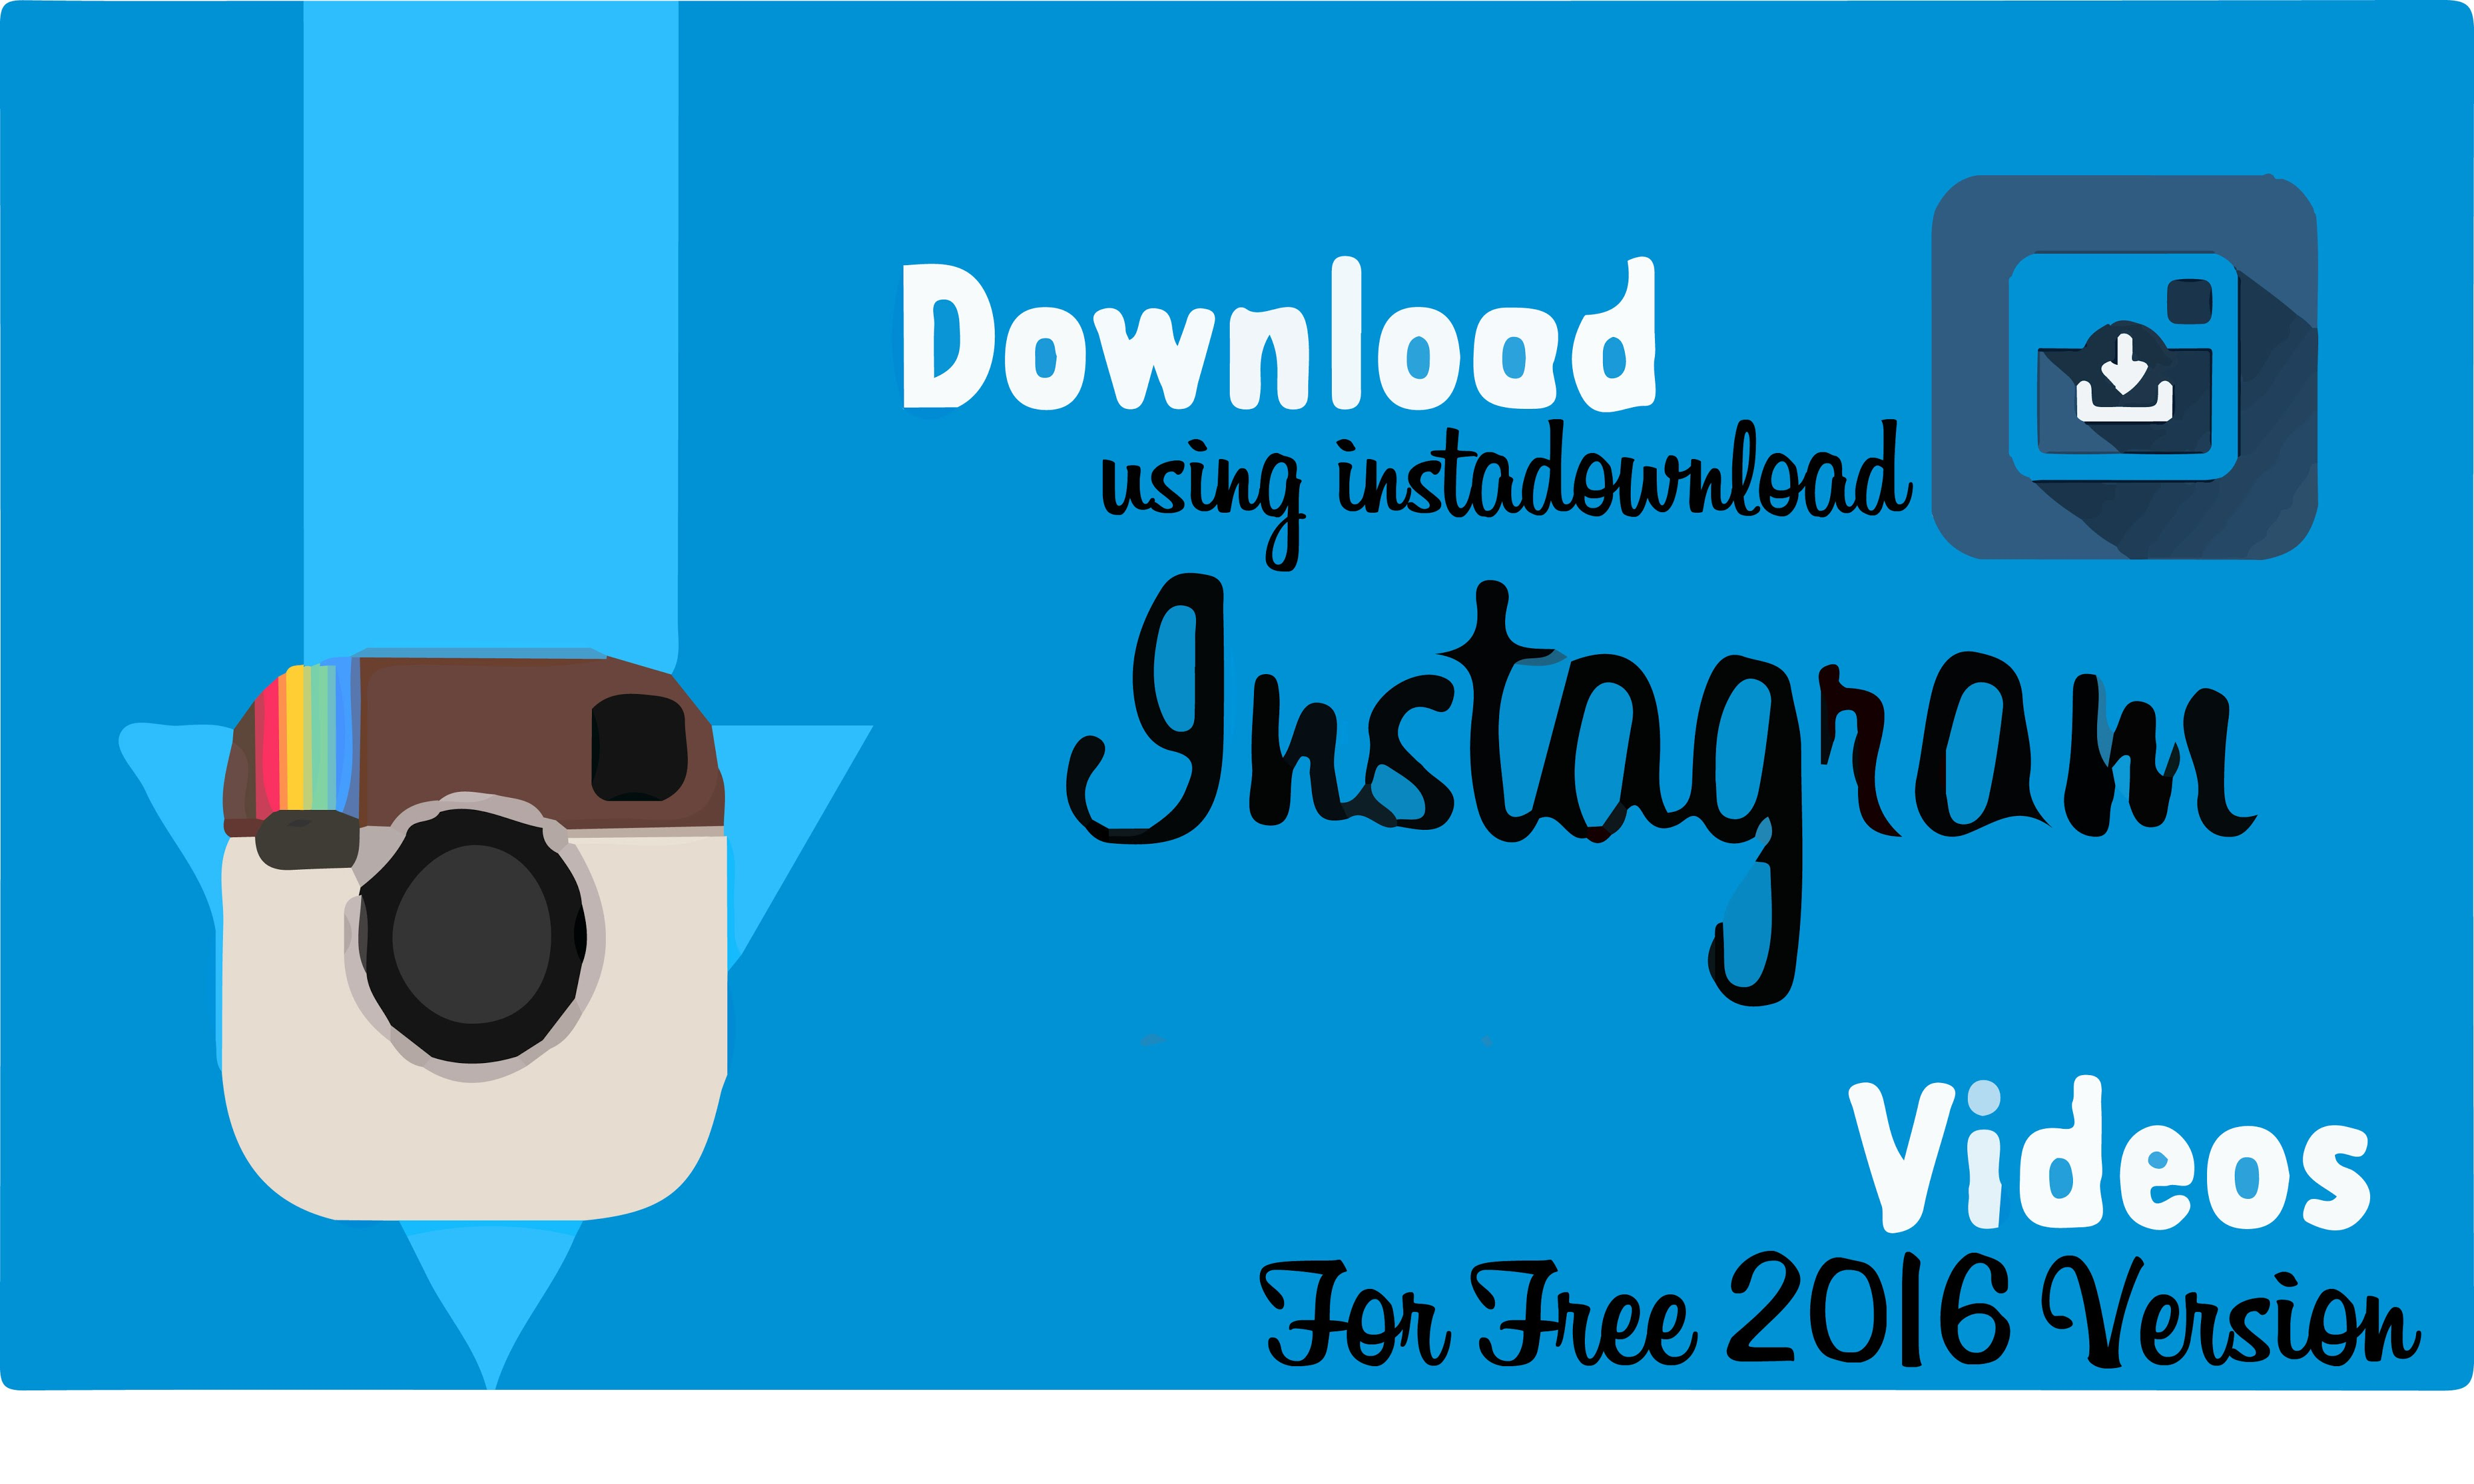 How to download clipart from instagram clipart transparent library how to download videos on instagram | download instagram videos ... clipart transparent library